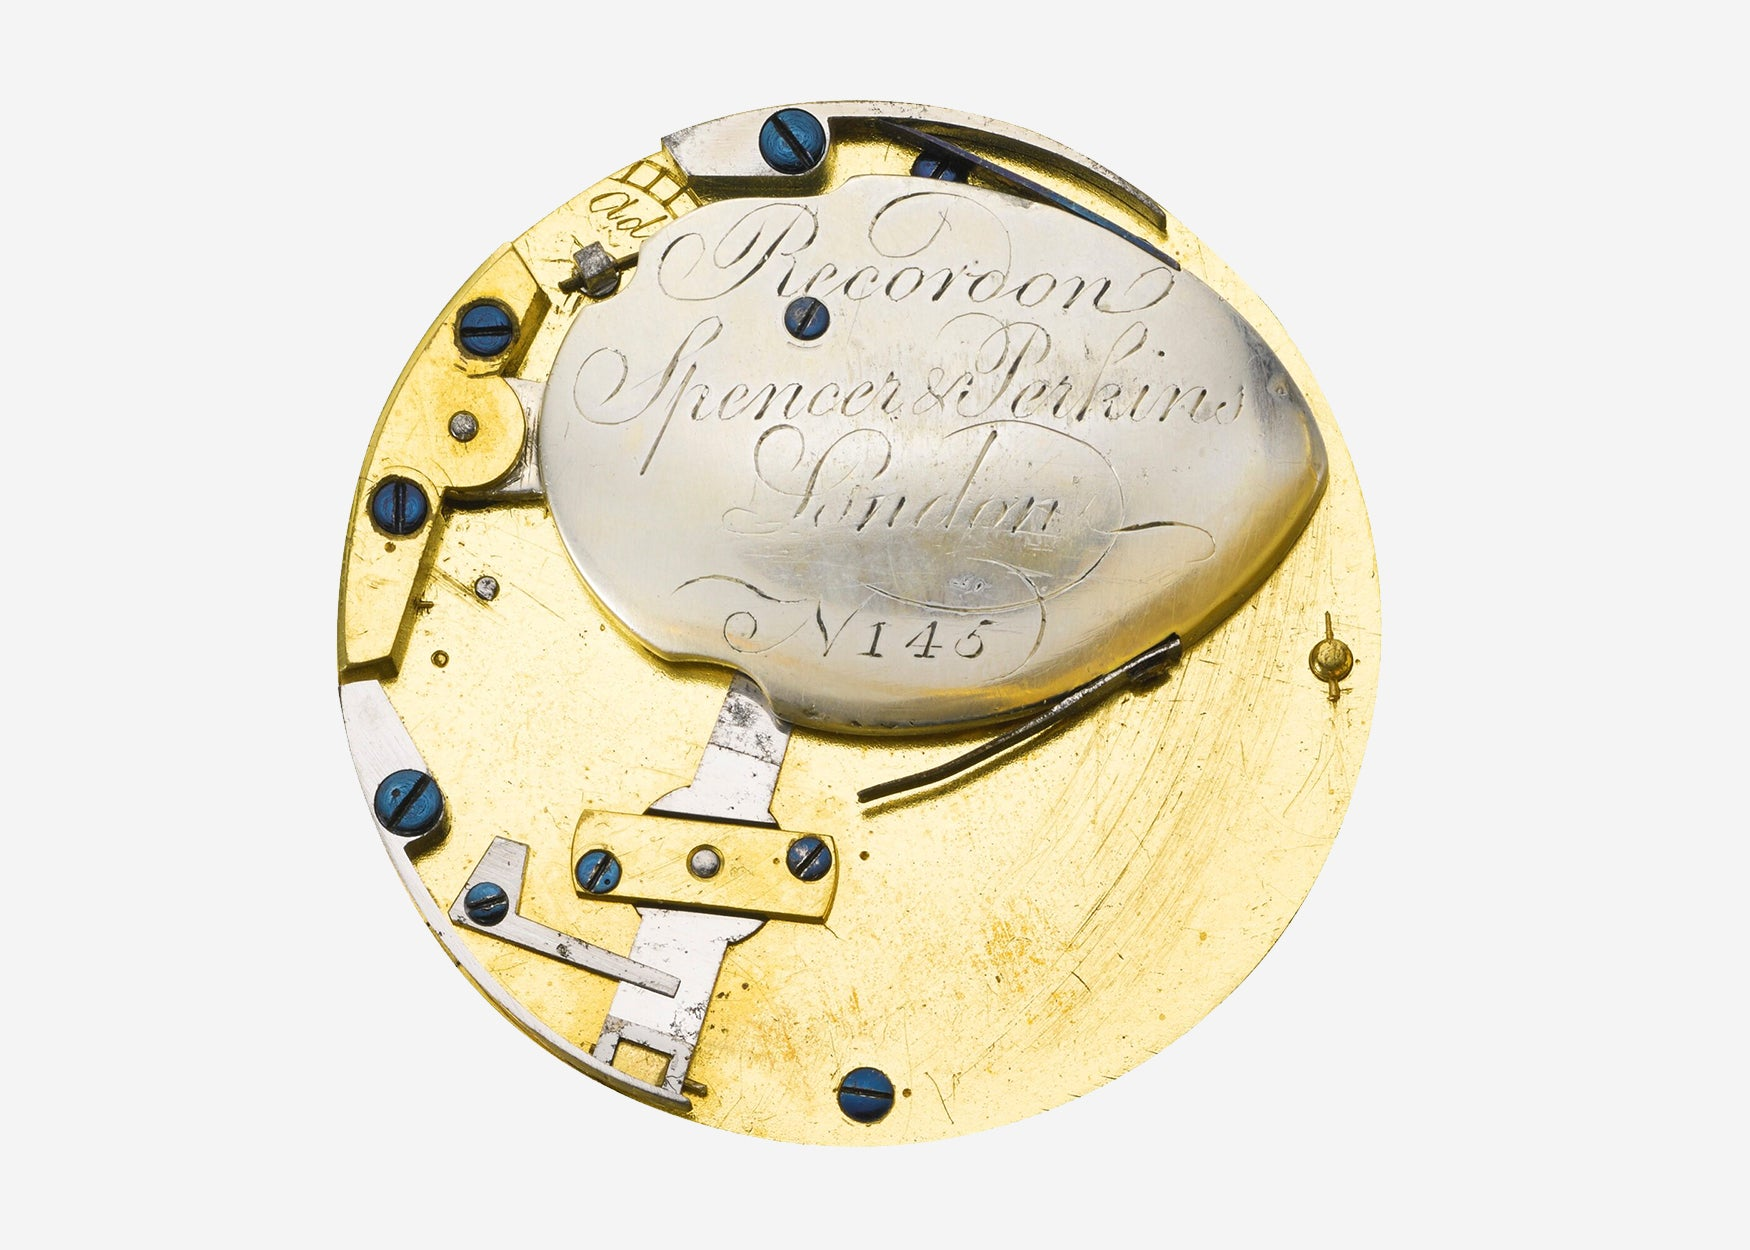 Recordon, Spencer & Perkins self-winding pocket watch movement In Four Patents that Changed the Face of Watchmaking for A Collected Man London